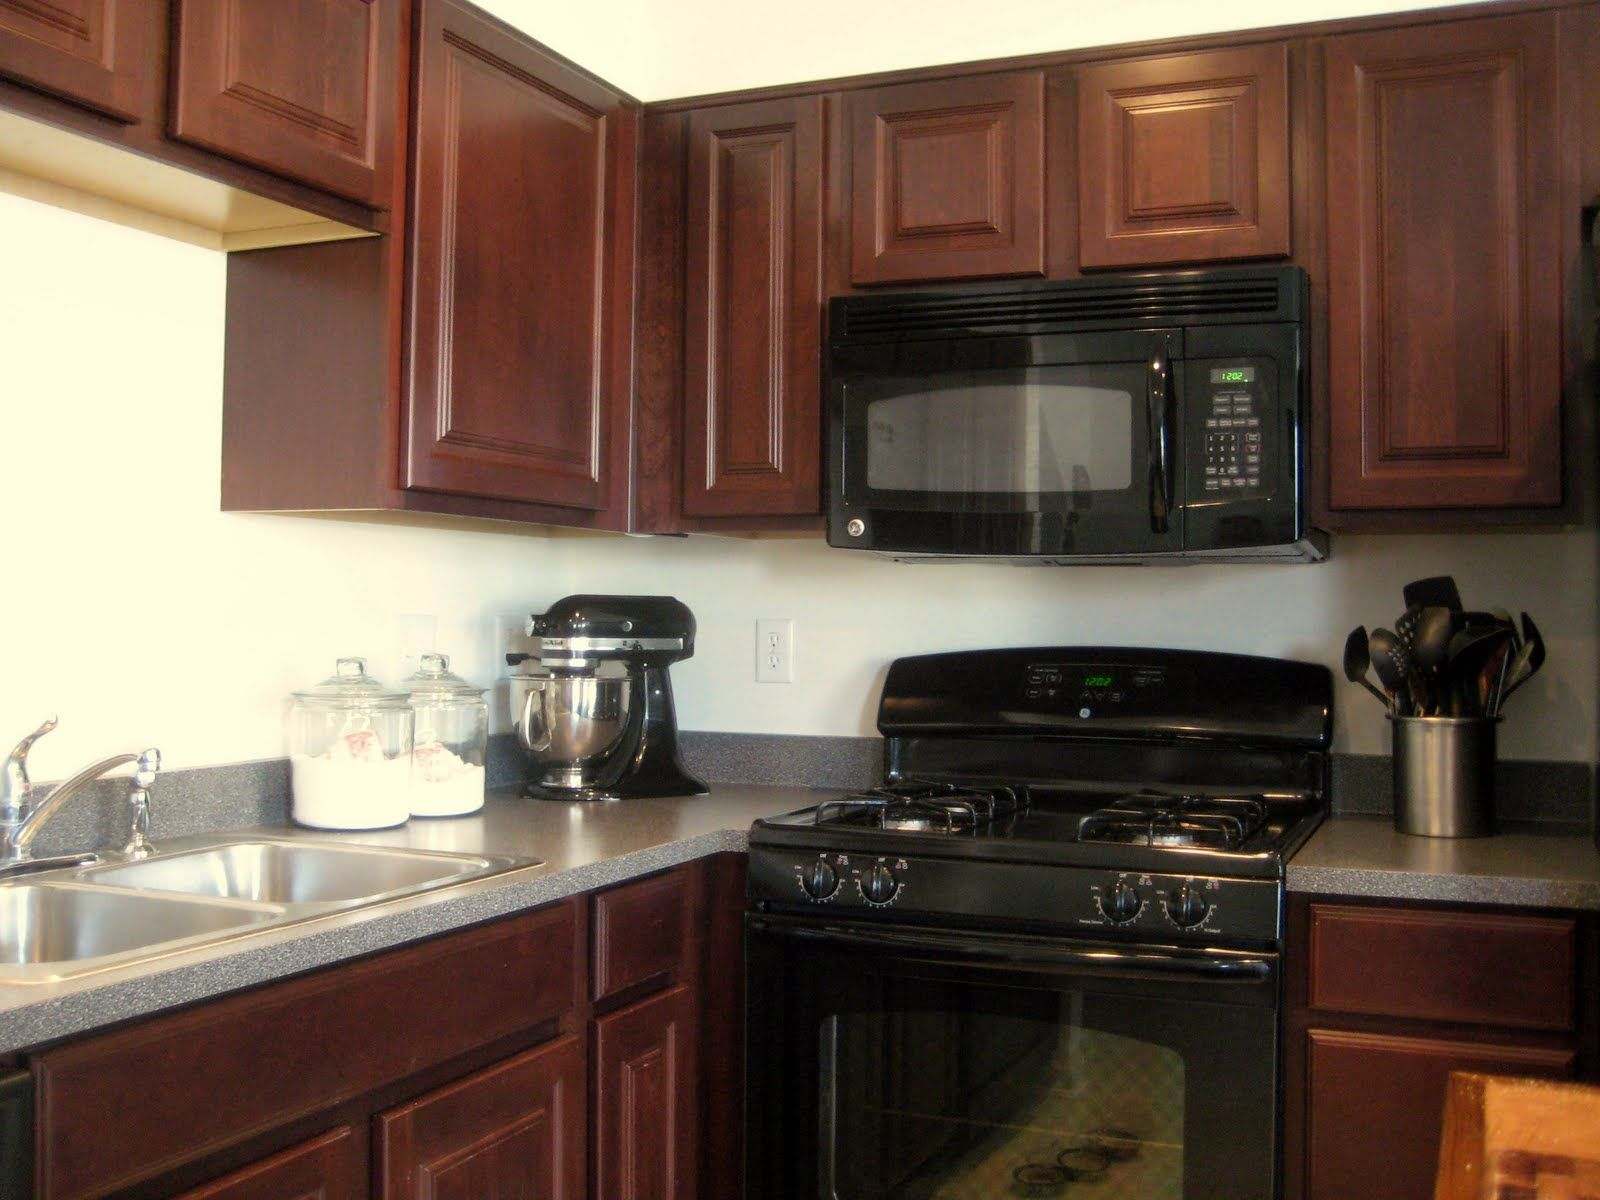 White Kitchen Appliances With Wood Cabinets i like this look a lot! black appliances, cherry cabinets, and